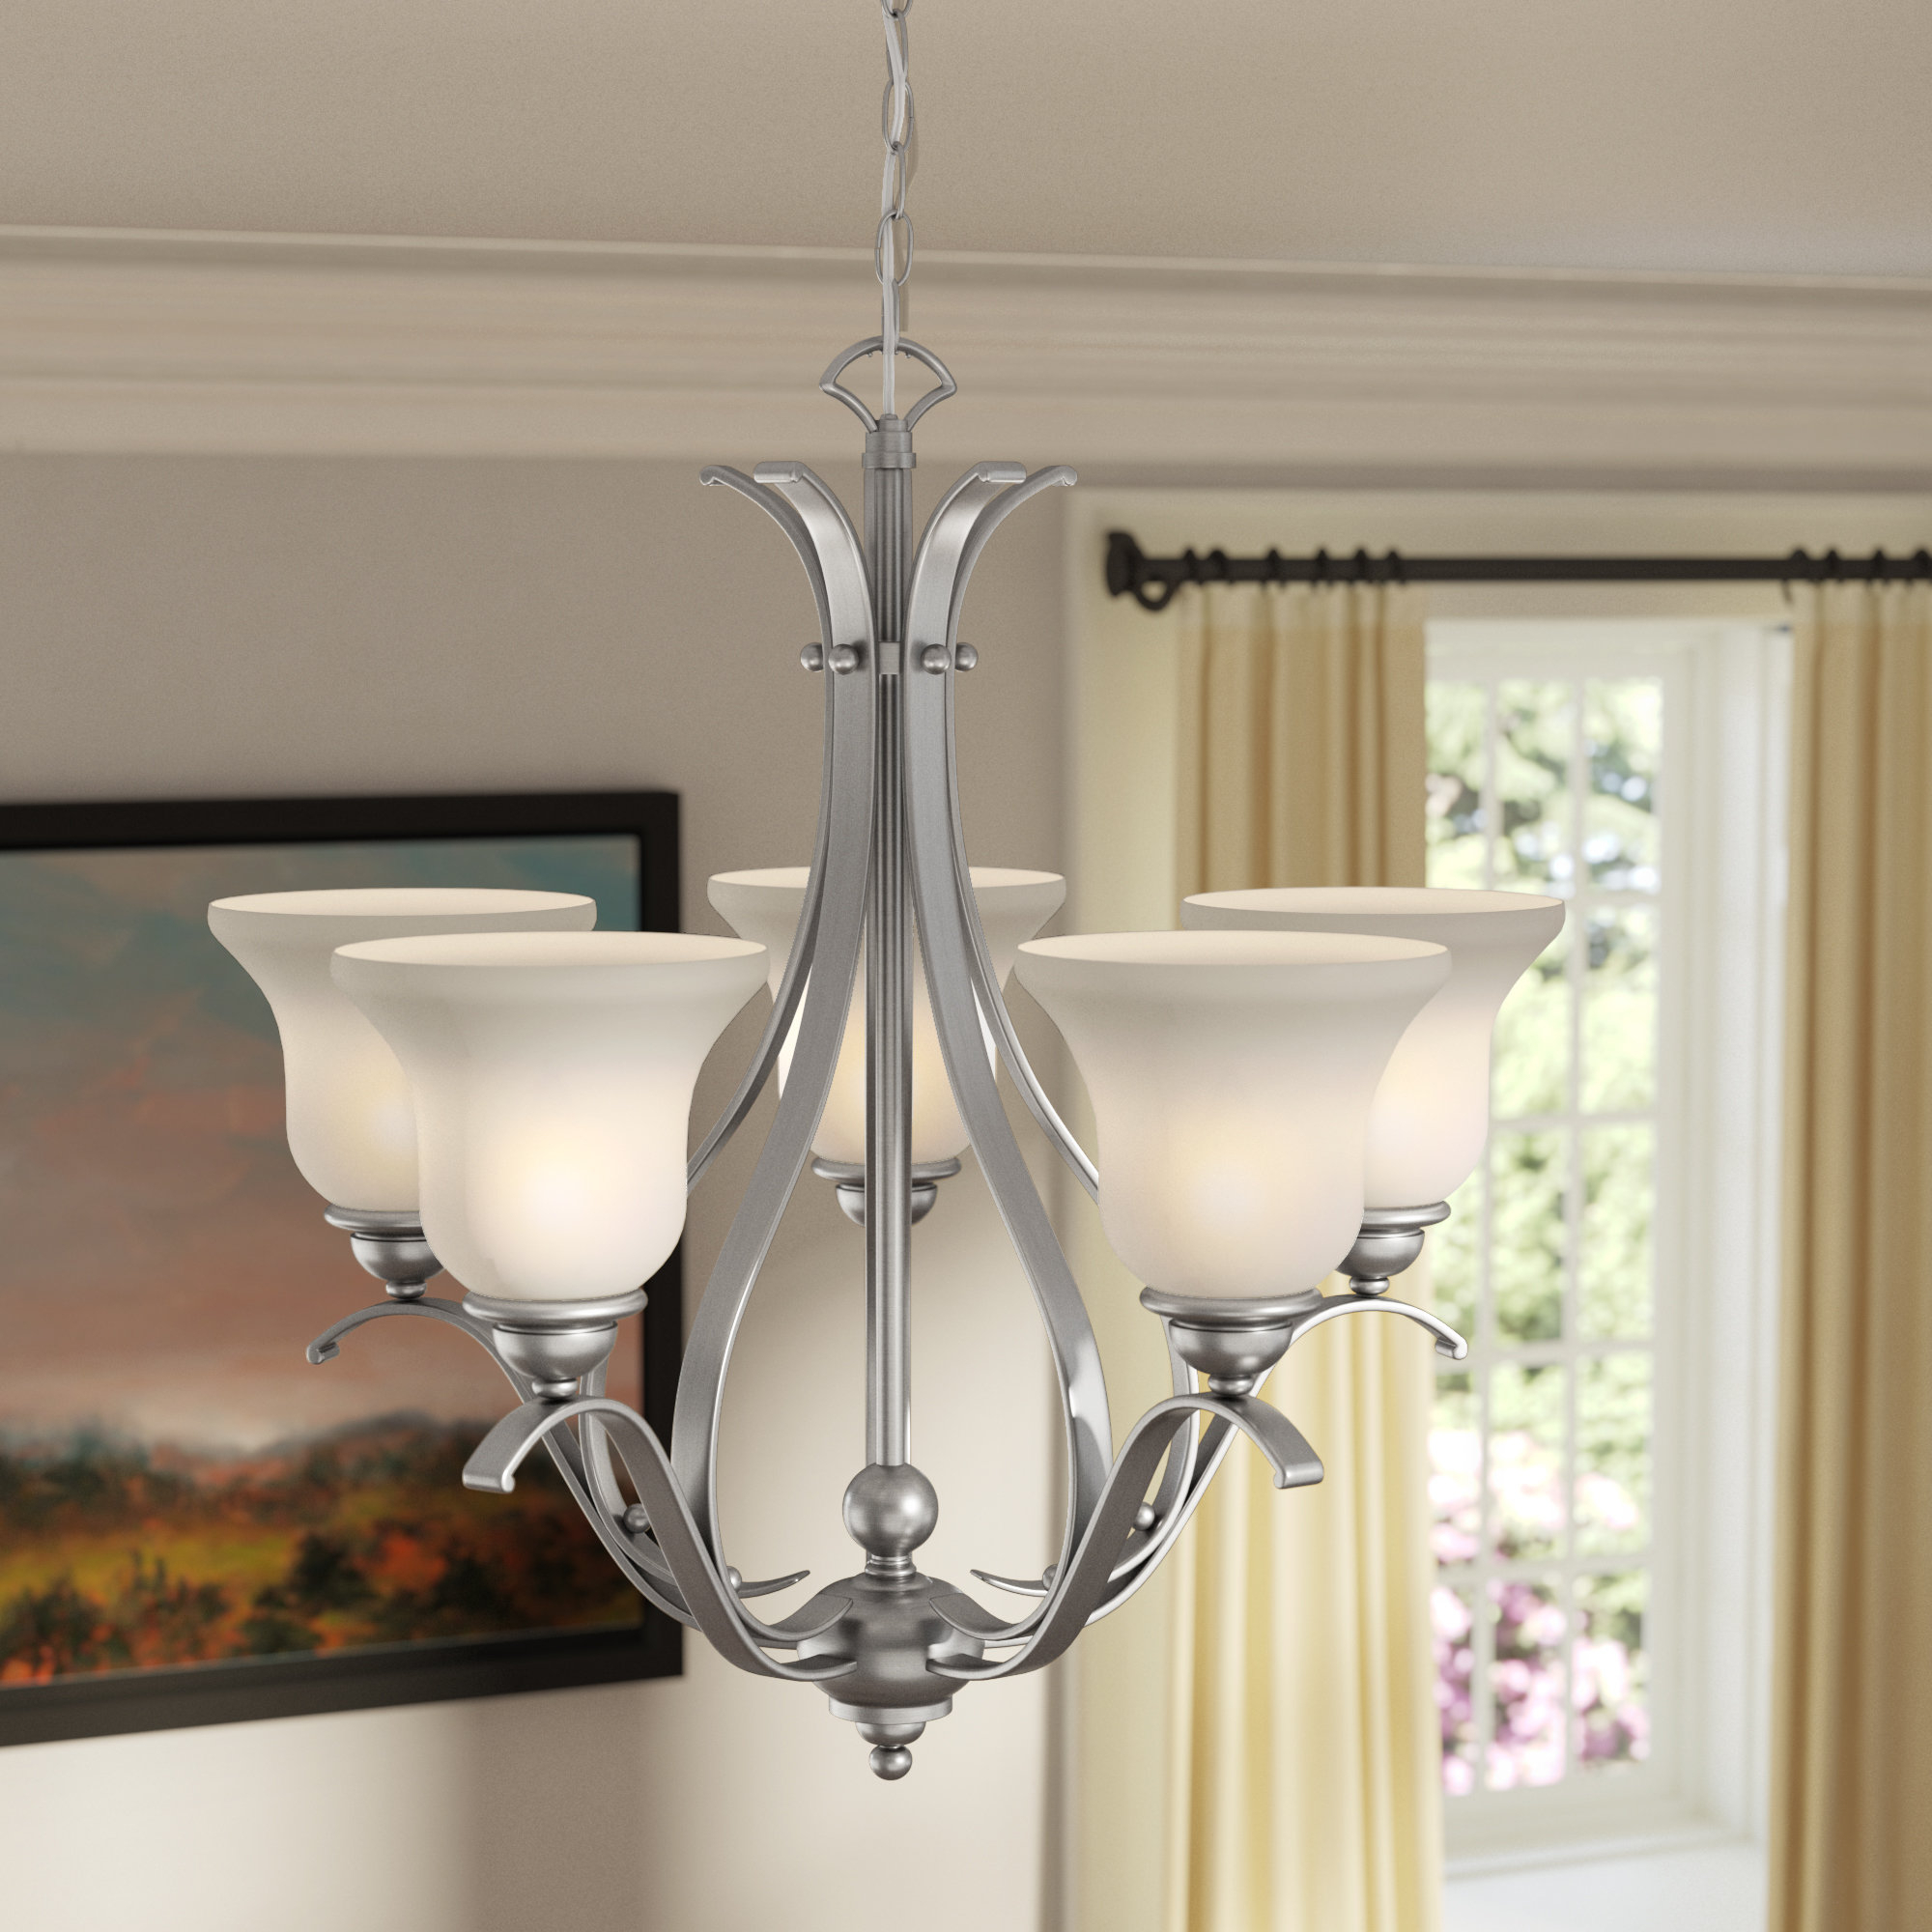 Van Horne 5 Light Shaded Chandelier With Well Known Van Horne 3 Light Single Teardrop Pendants (View 18 of 25)